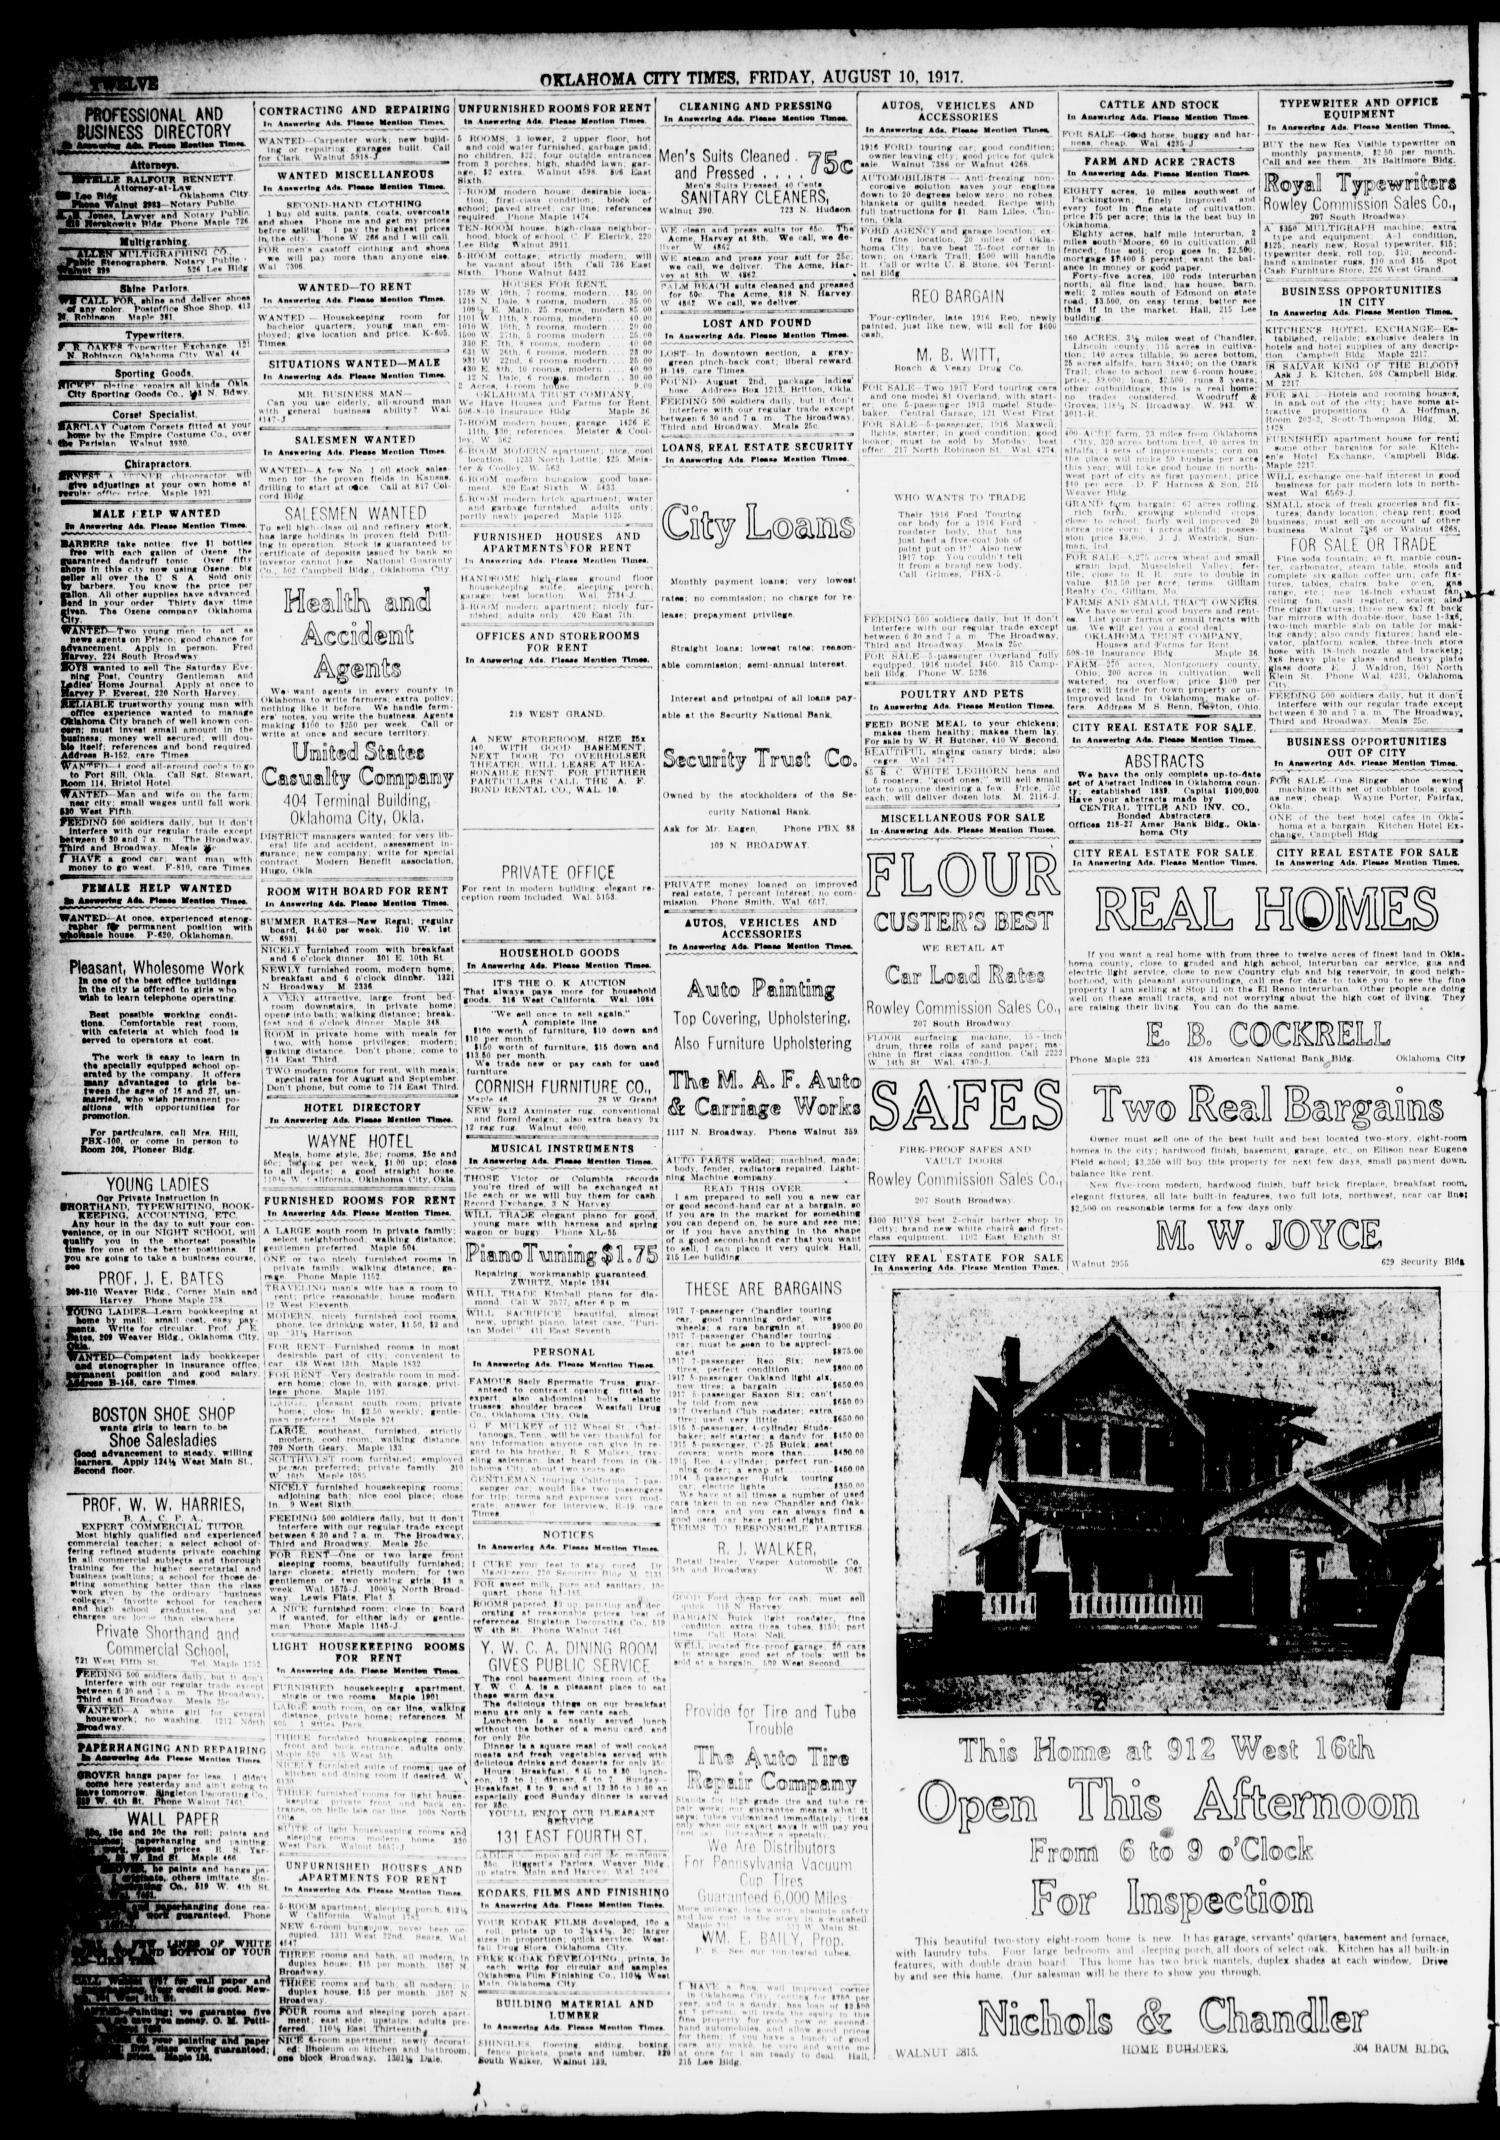 Oklahoma City Times (Oklahoma City, Okla ), Vol  29, No  113